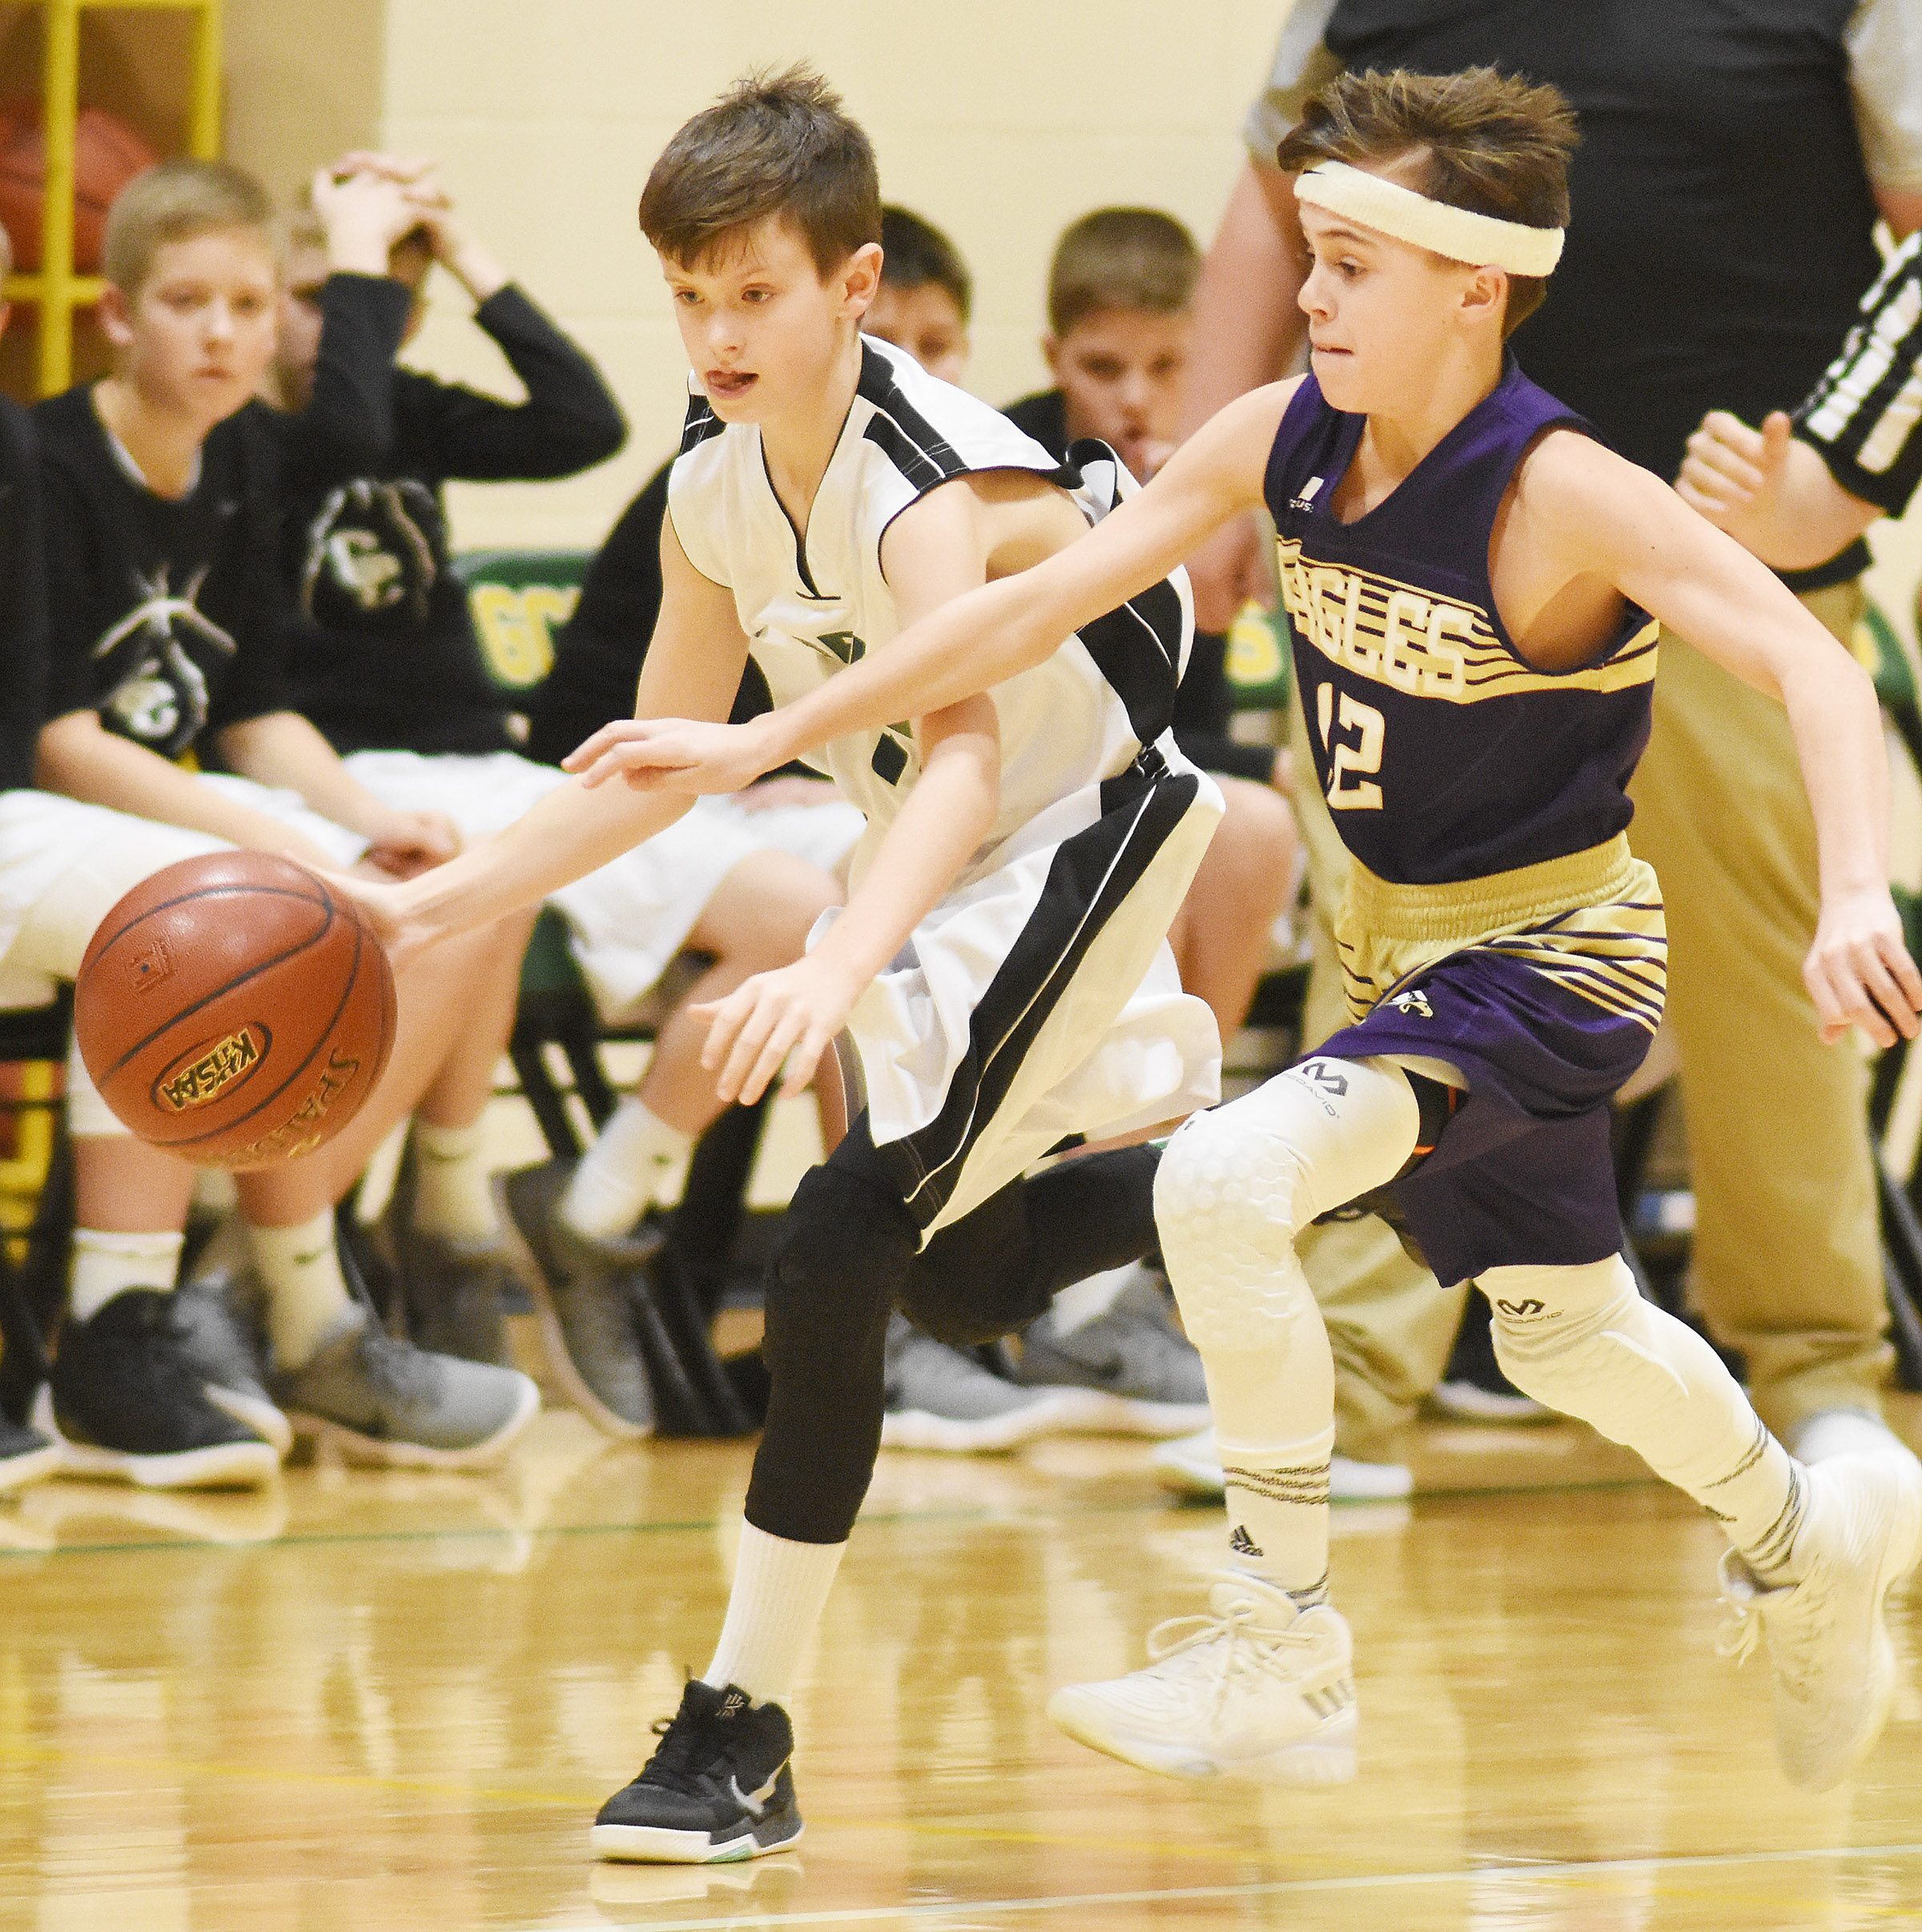 CMS seventh-grader Chase Hord looks to steal.